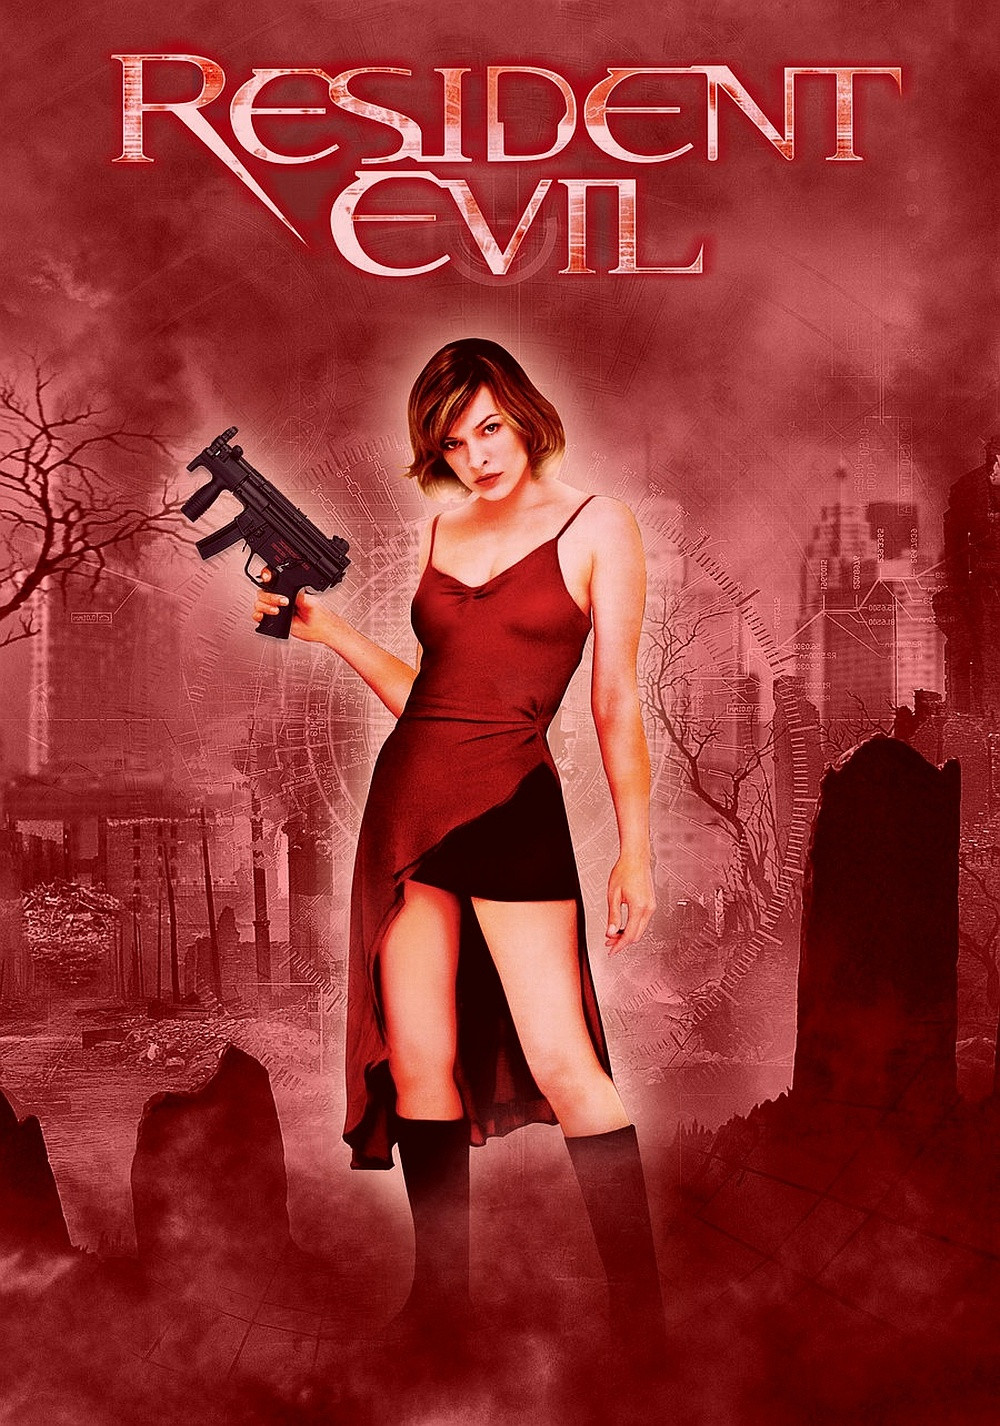 Agree, this Resident evil movie girl apologise